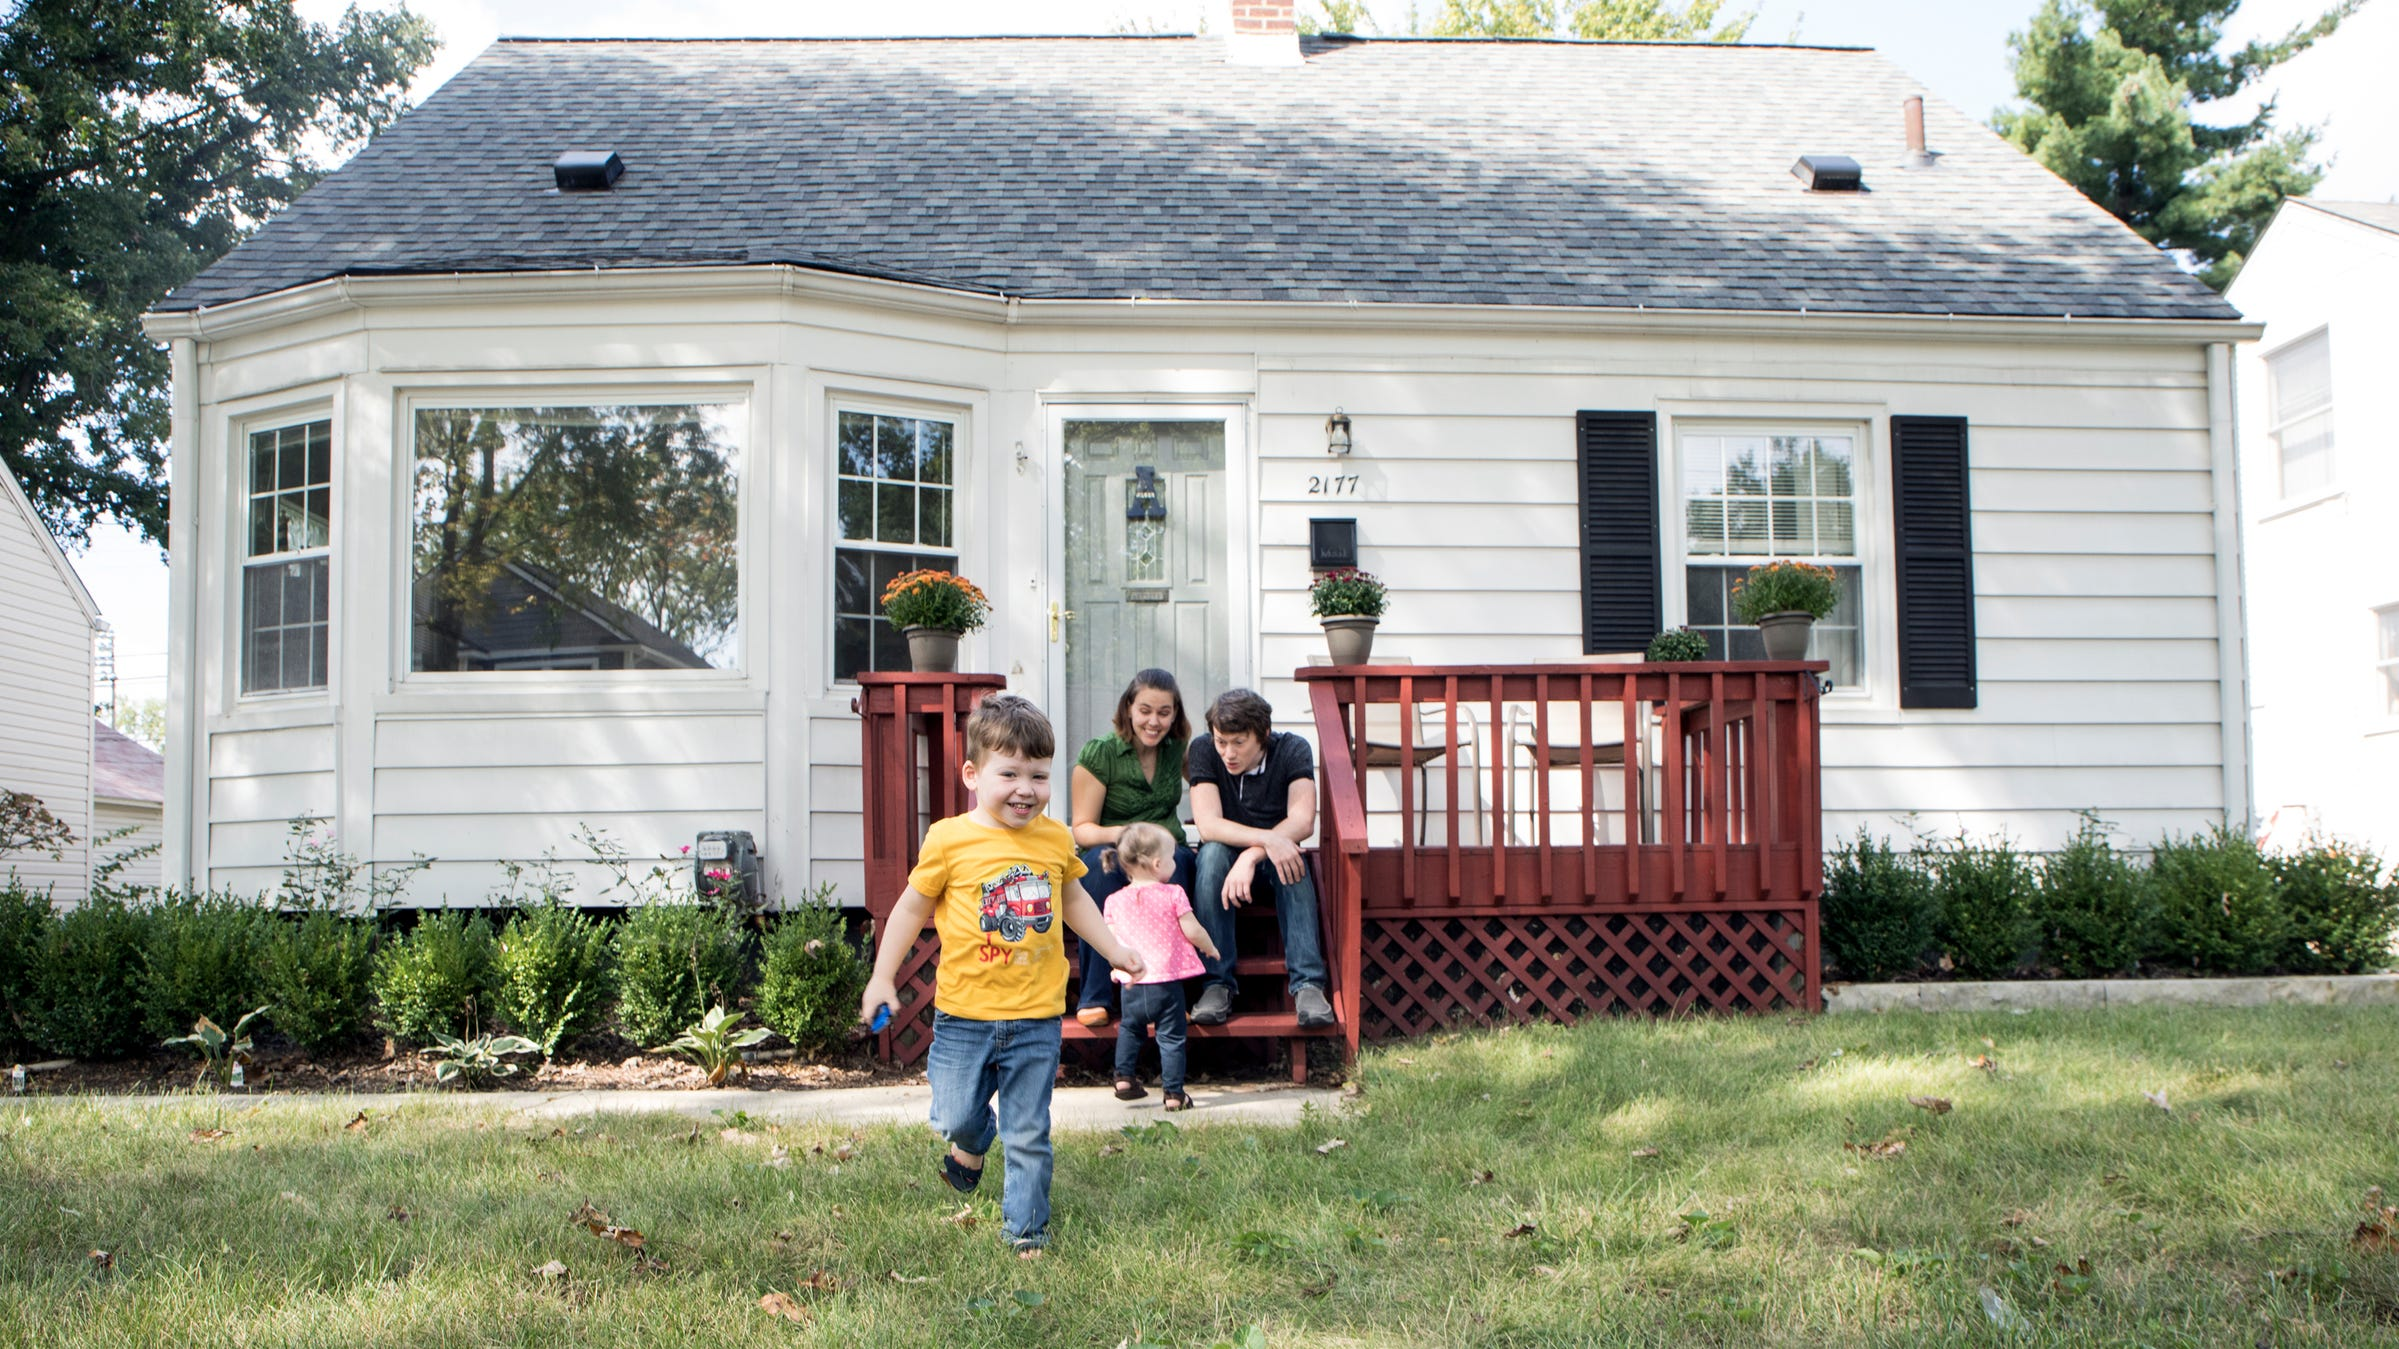 House rental prices are soaring in Oakland County